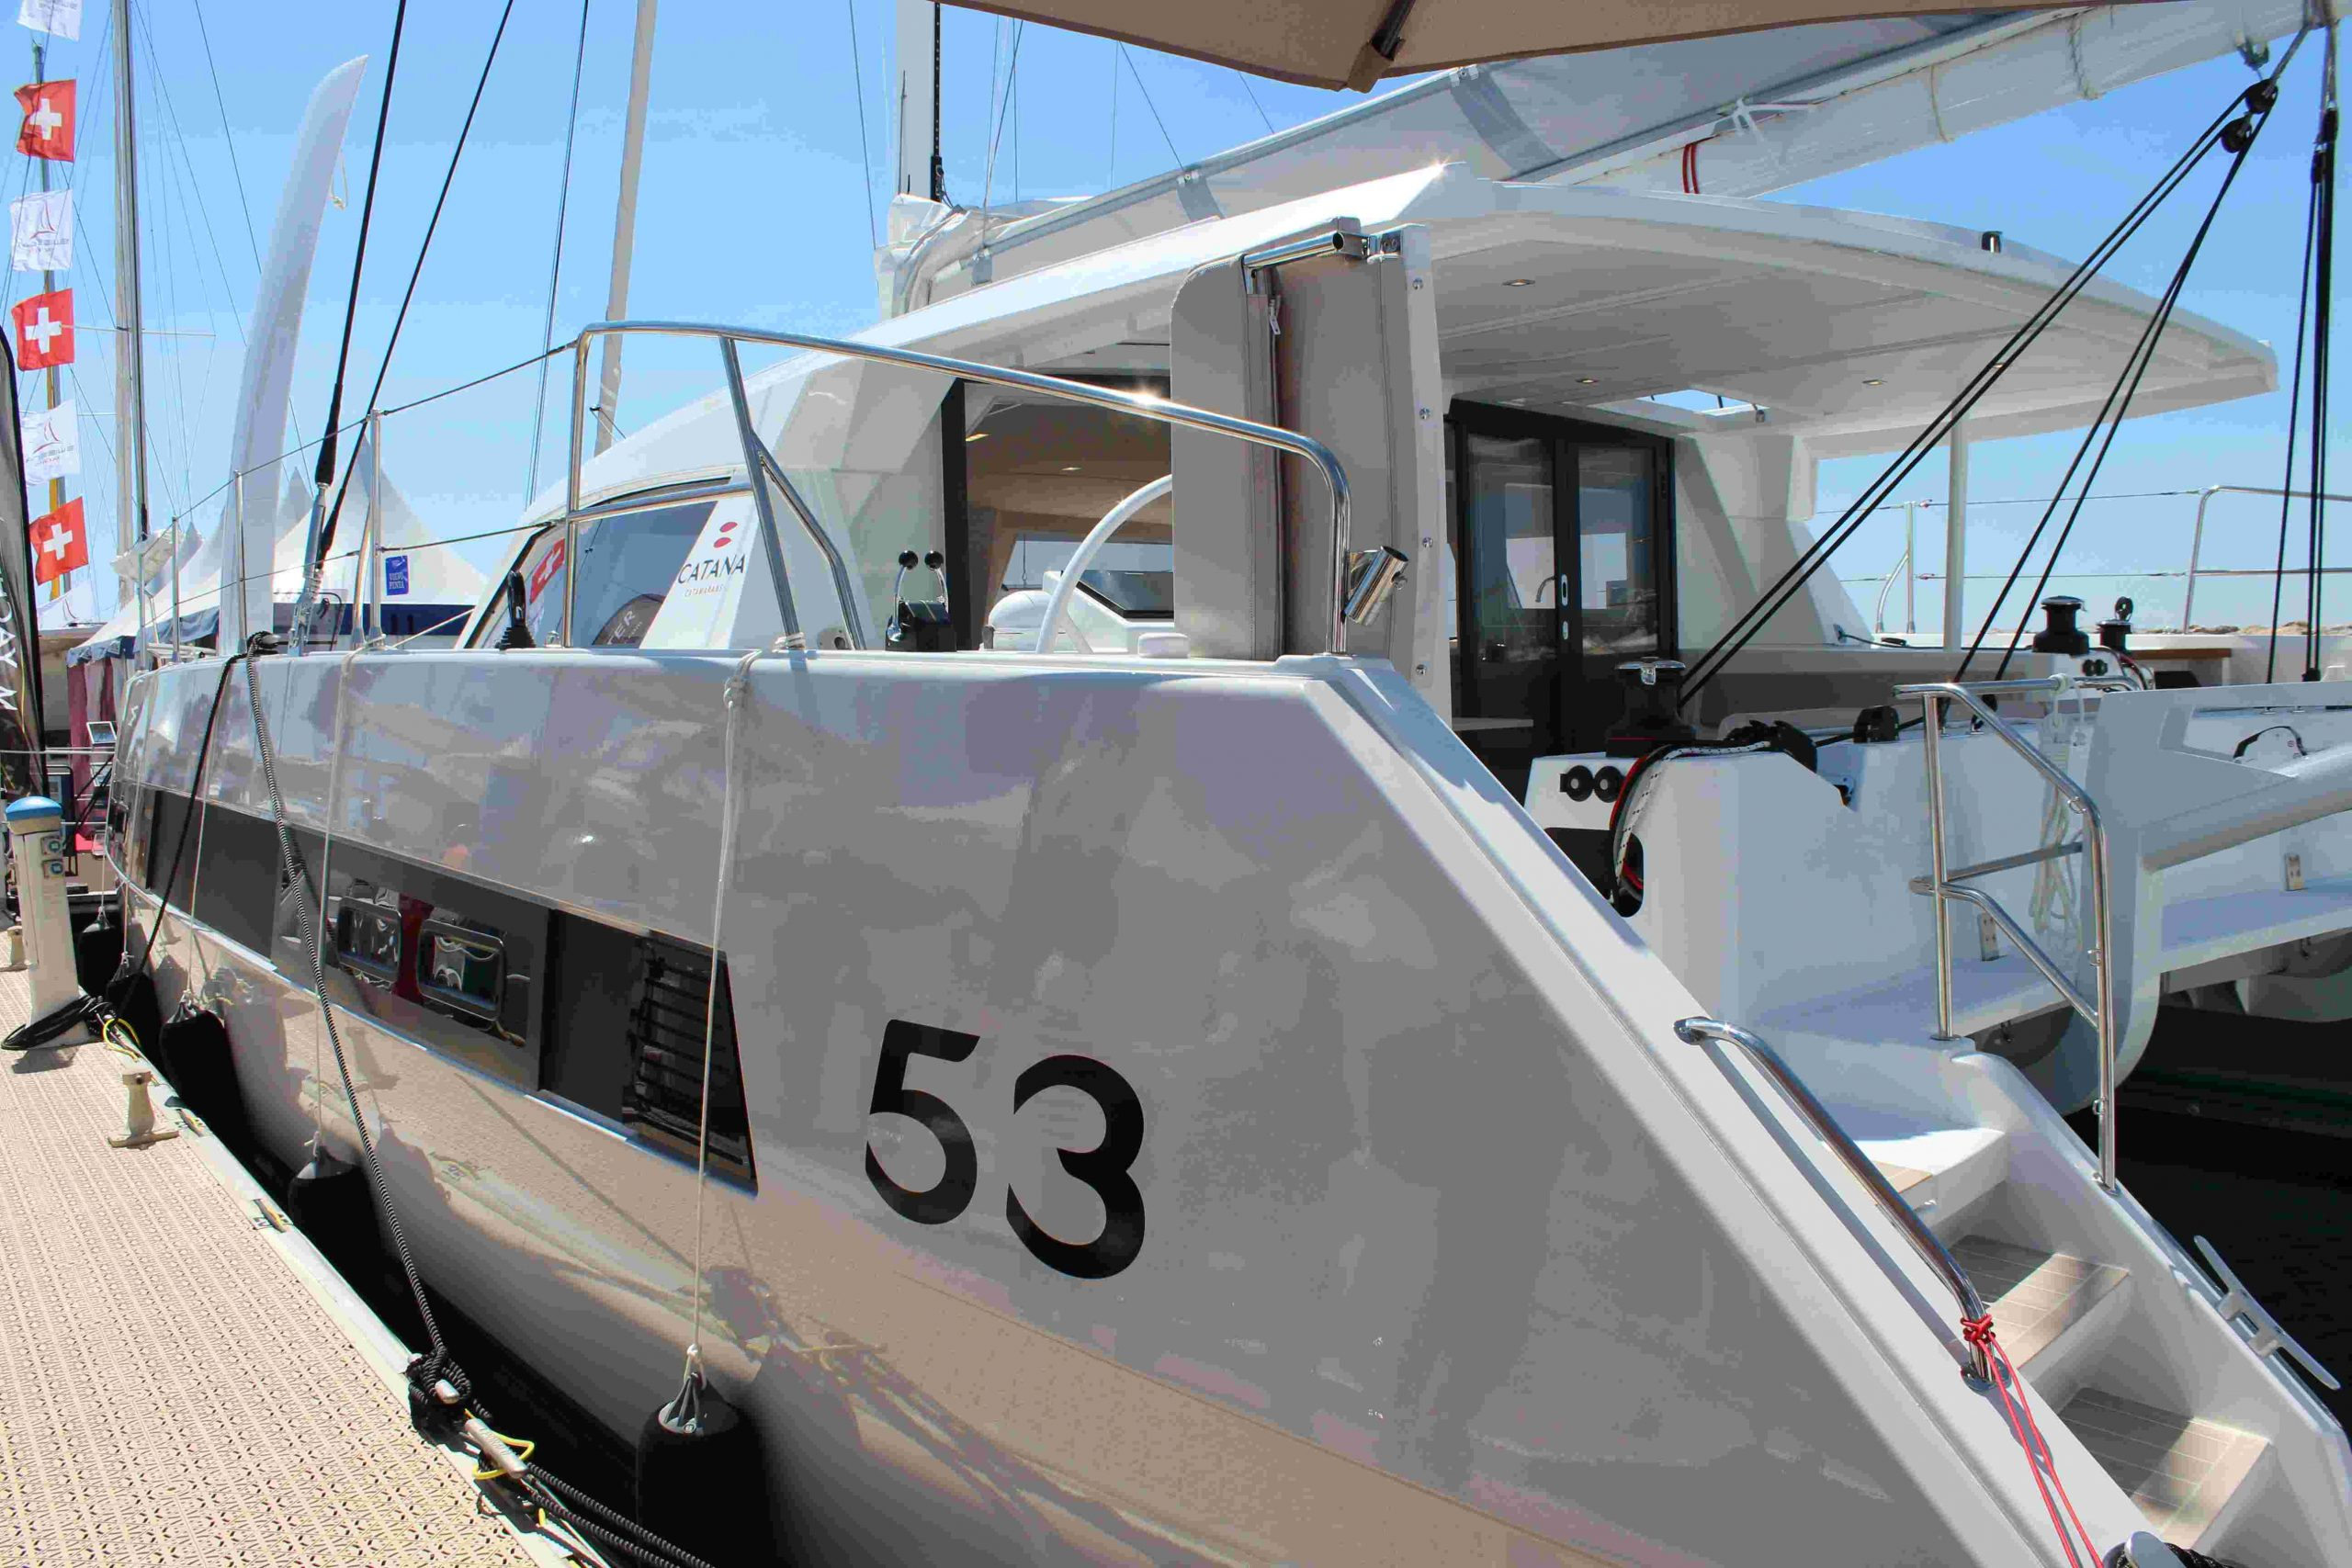 {La Grande Motte} The Catana 53 Hits the Cruising Sweet Spot